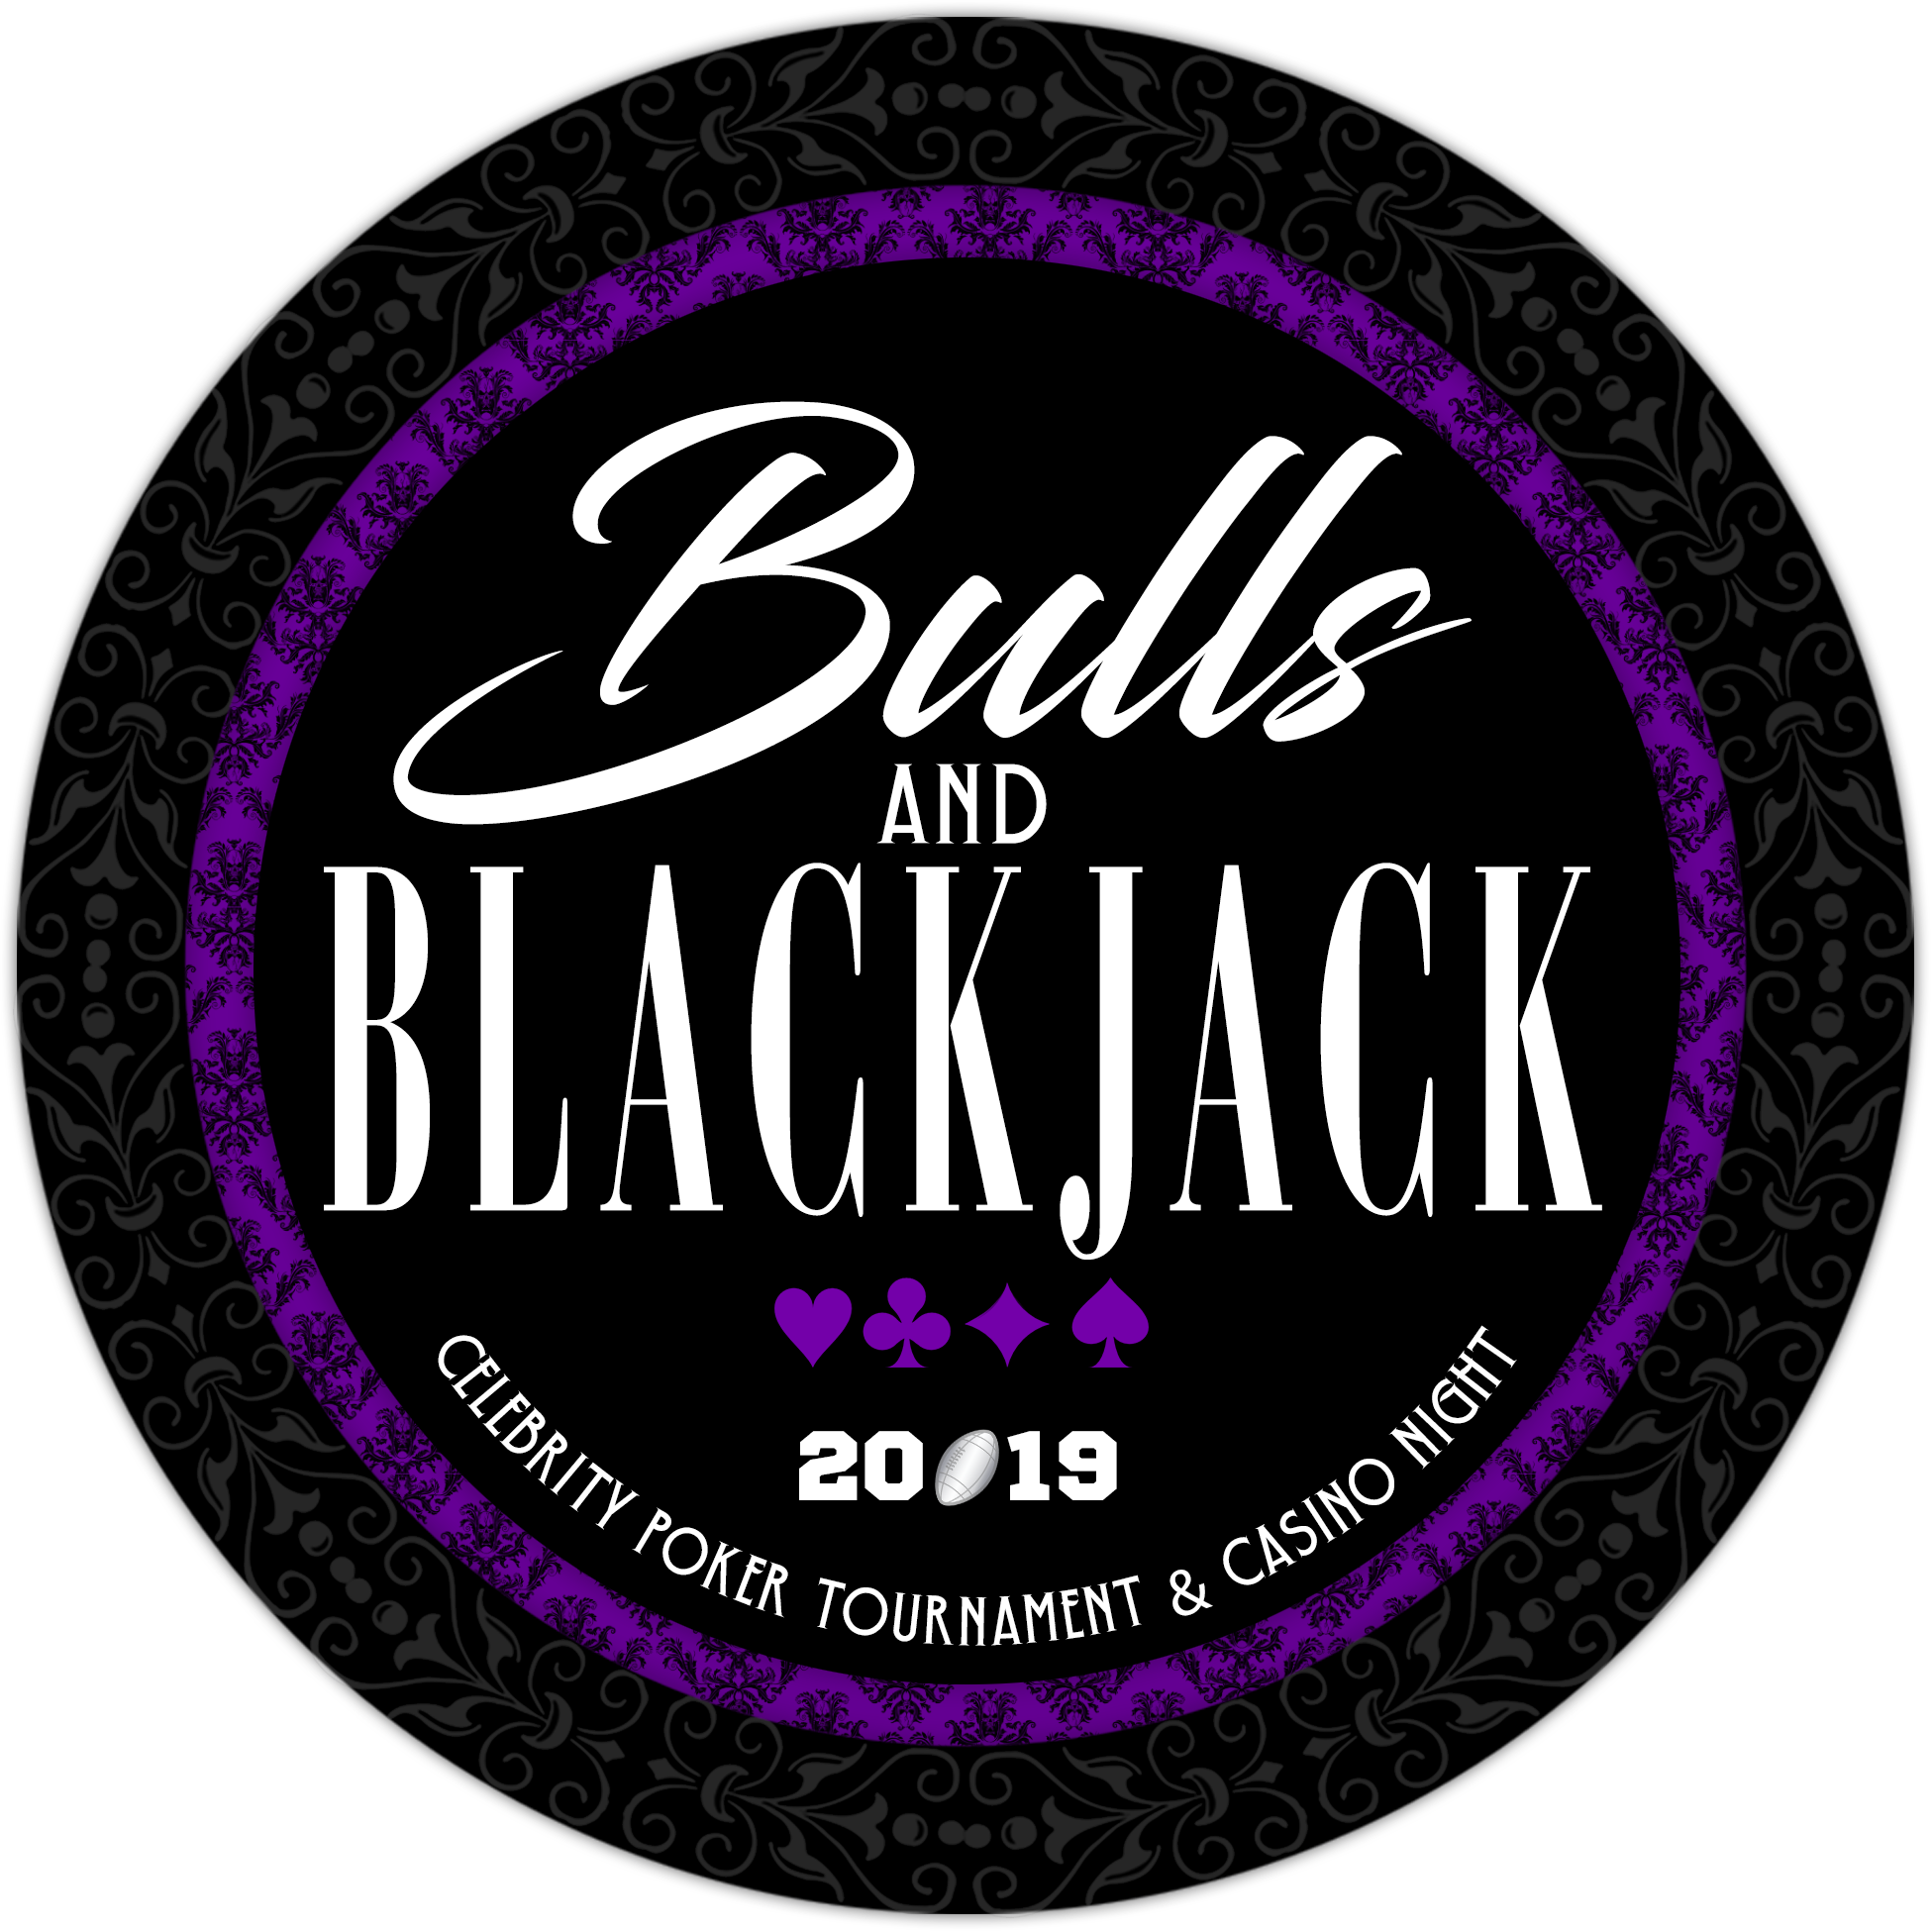 Bulls & Blackjack